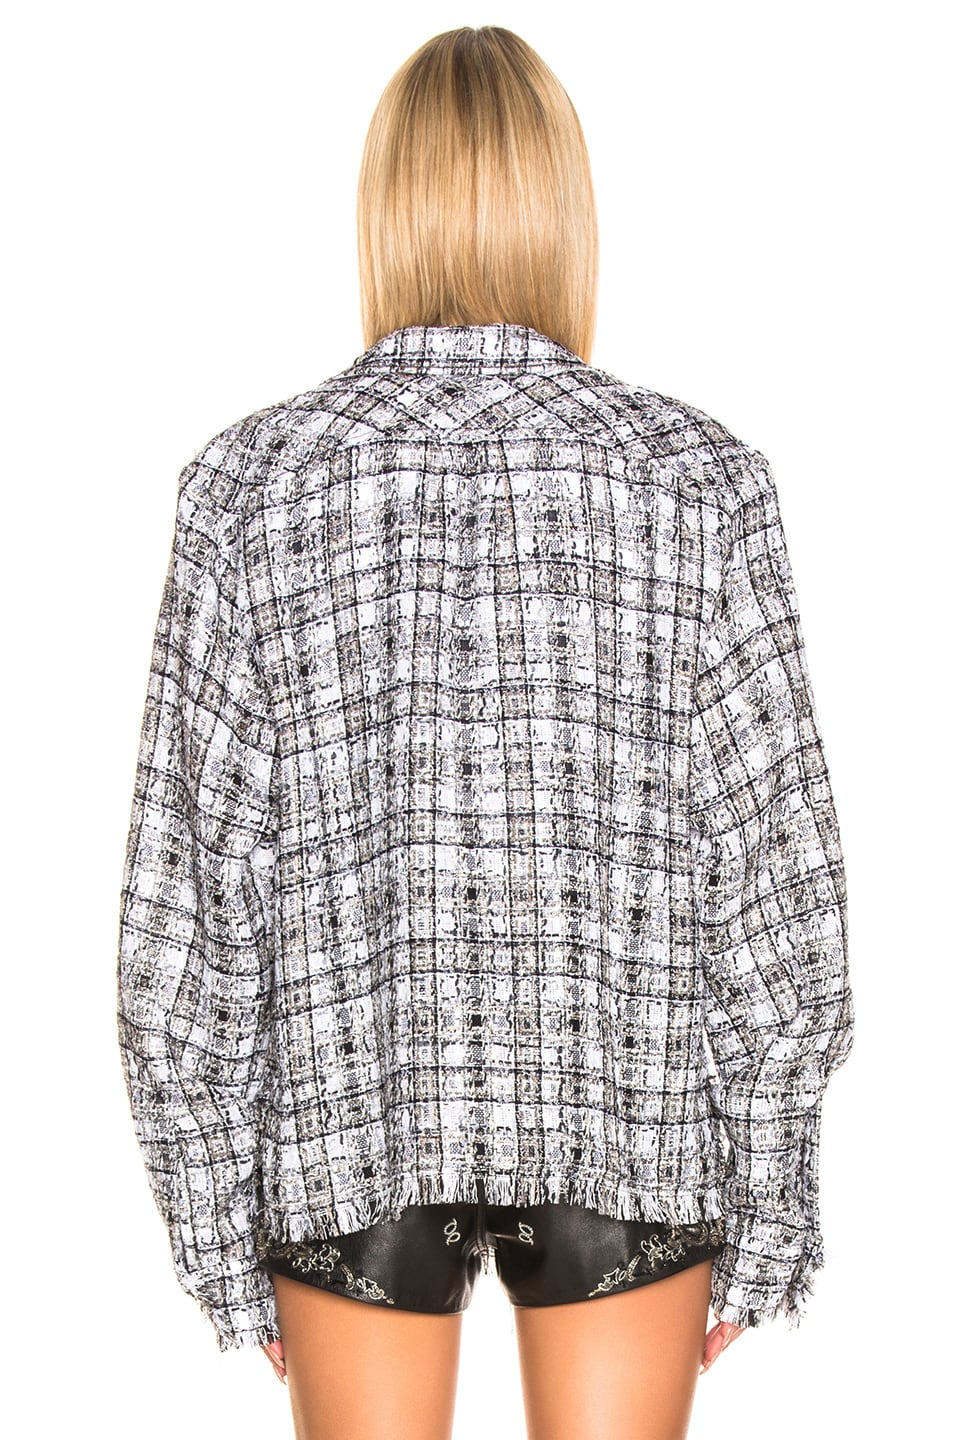 Image 4 of Faith Connexion Tweed Oversized Top in Black & White